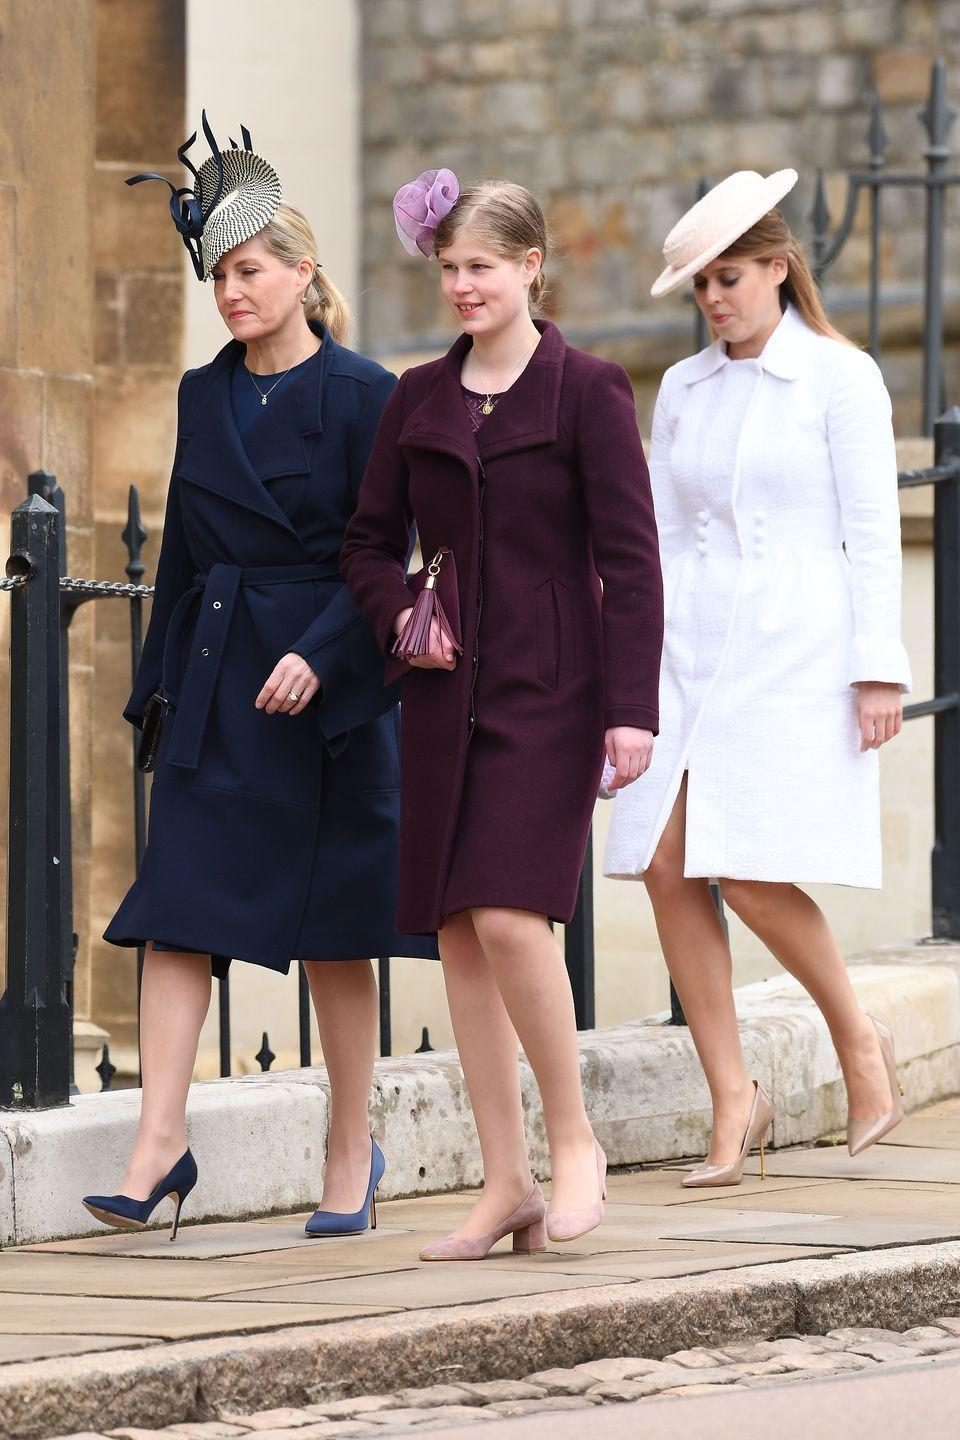 """<p>The royal ladies are seen here marching down the hill to <a href=""""https://www.townandcountrymag.com/society/tradition/a14392230/st-george-chapel-windsor-castle-meghan-markle-prince-harry-wedding-venue/"""" rel=""""nofollow noopener"""" target=""""_blank"""" data-ylk=""""slk:St. George's Chapel."""" class=""""link rapid-noclick-resp"""">St. George's Chapel.</a></p><p><strong><a href=""""https://www.townandcountrymag.com/society/tradition/a14501238/lady-louise-windsor-facts/"""" rel=""""nofollow noopener"""" target=""""_blank"""" data-ylk=""""slk:More: Who Is the Queen's Granddaughter, Lady Louise?"""" class=""""link rapid-noclick-resp"""">More: Who Is the Queen's Granddaughter, Lady Louise?</a></strong><br></p>"""